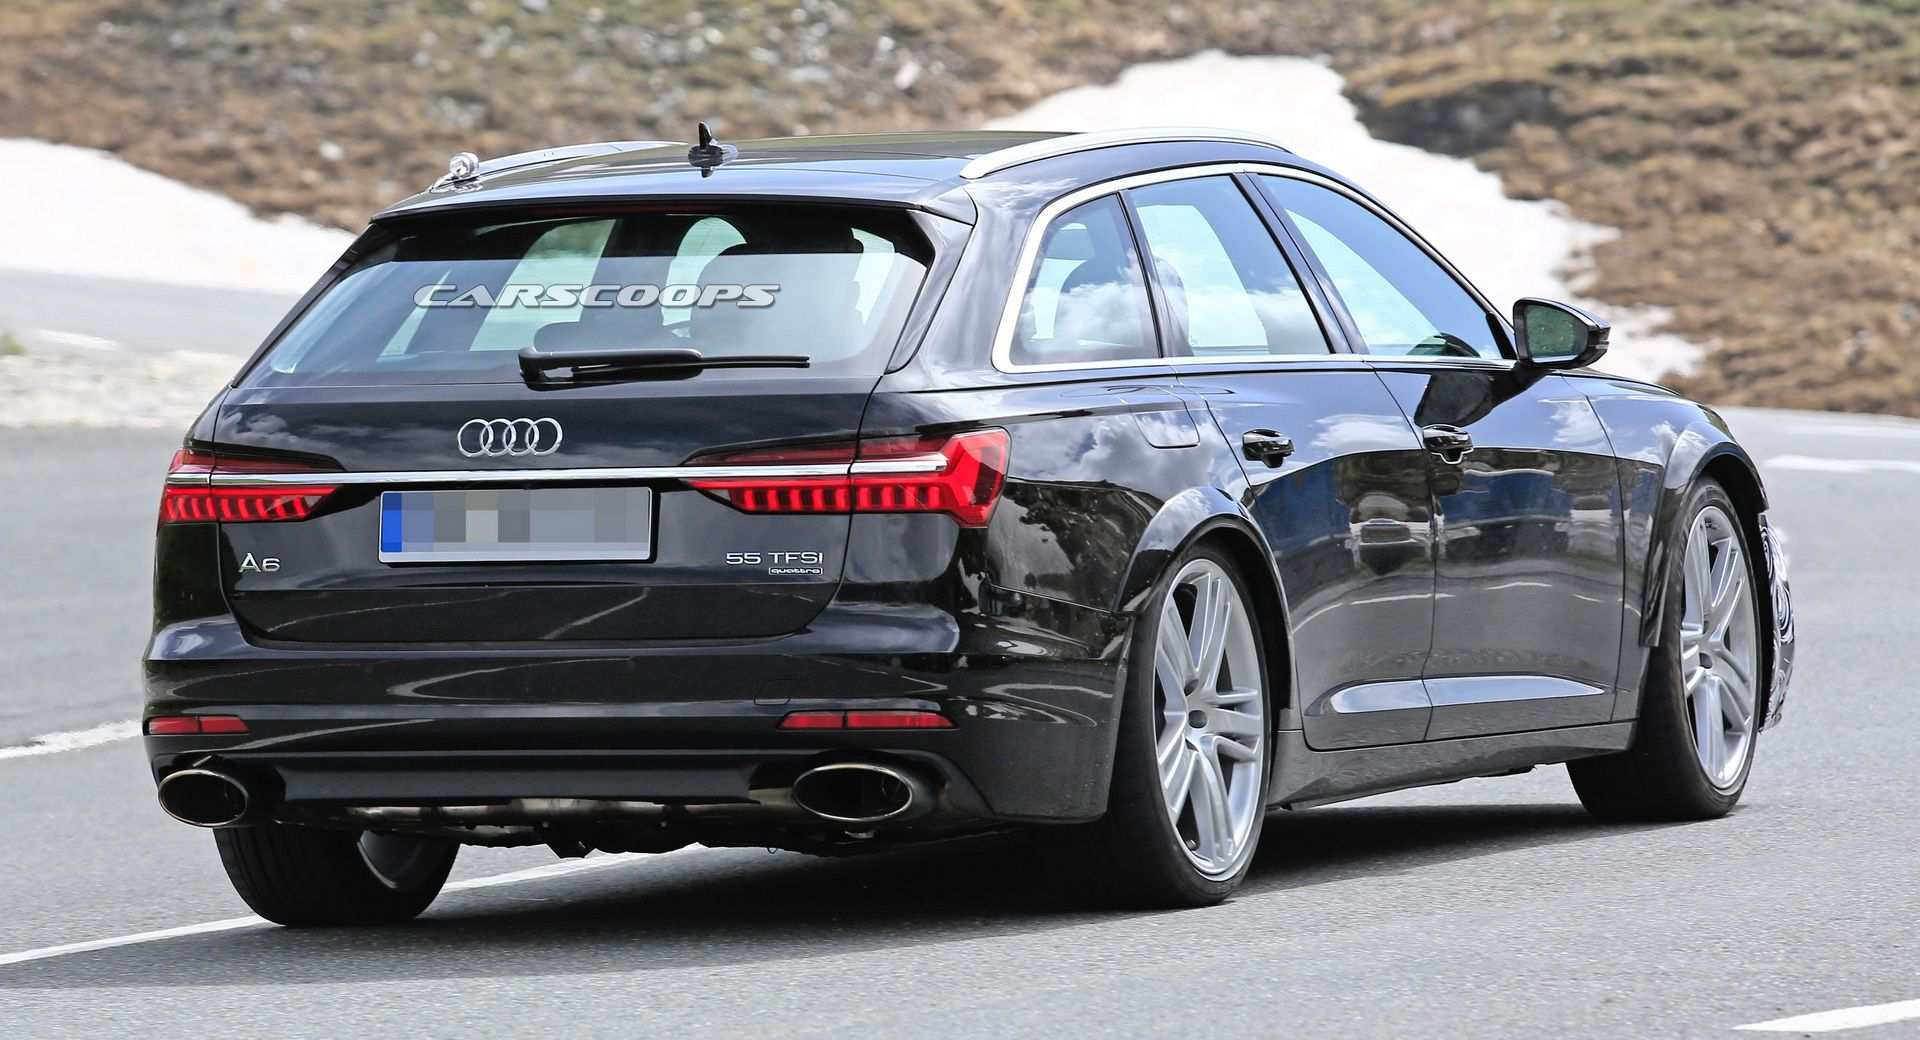 75 New 2020 Audi Rs6 Pictures with 2020 Audi Rs6